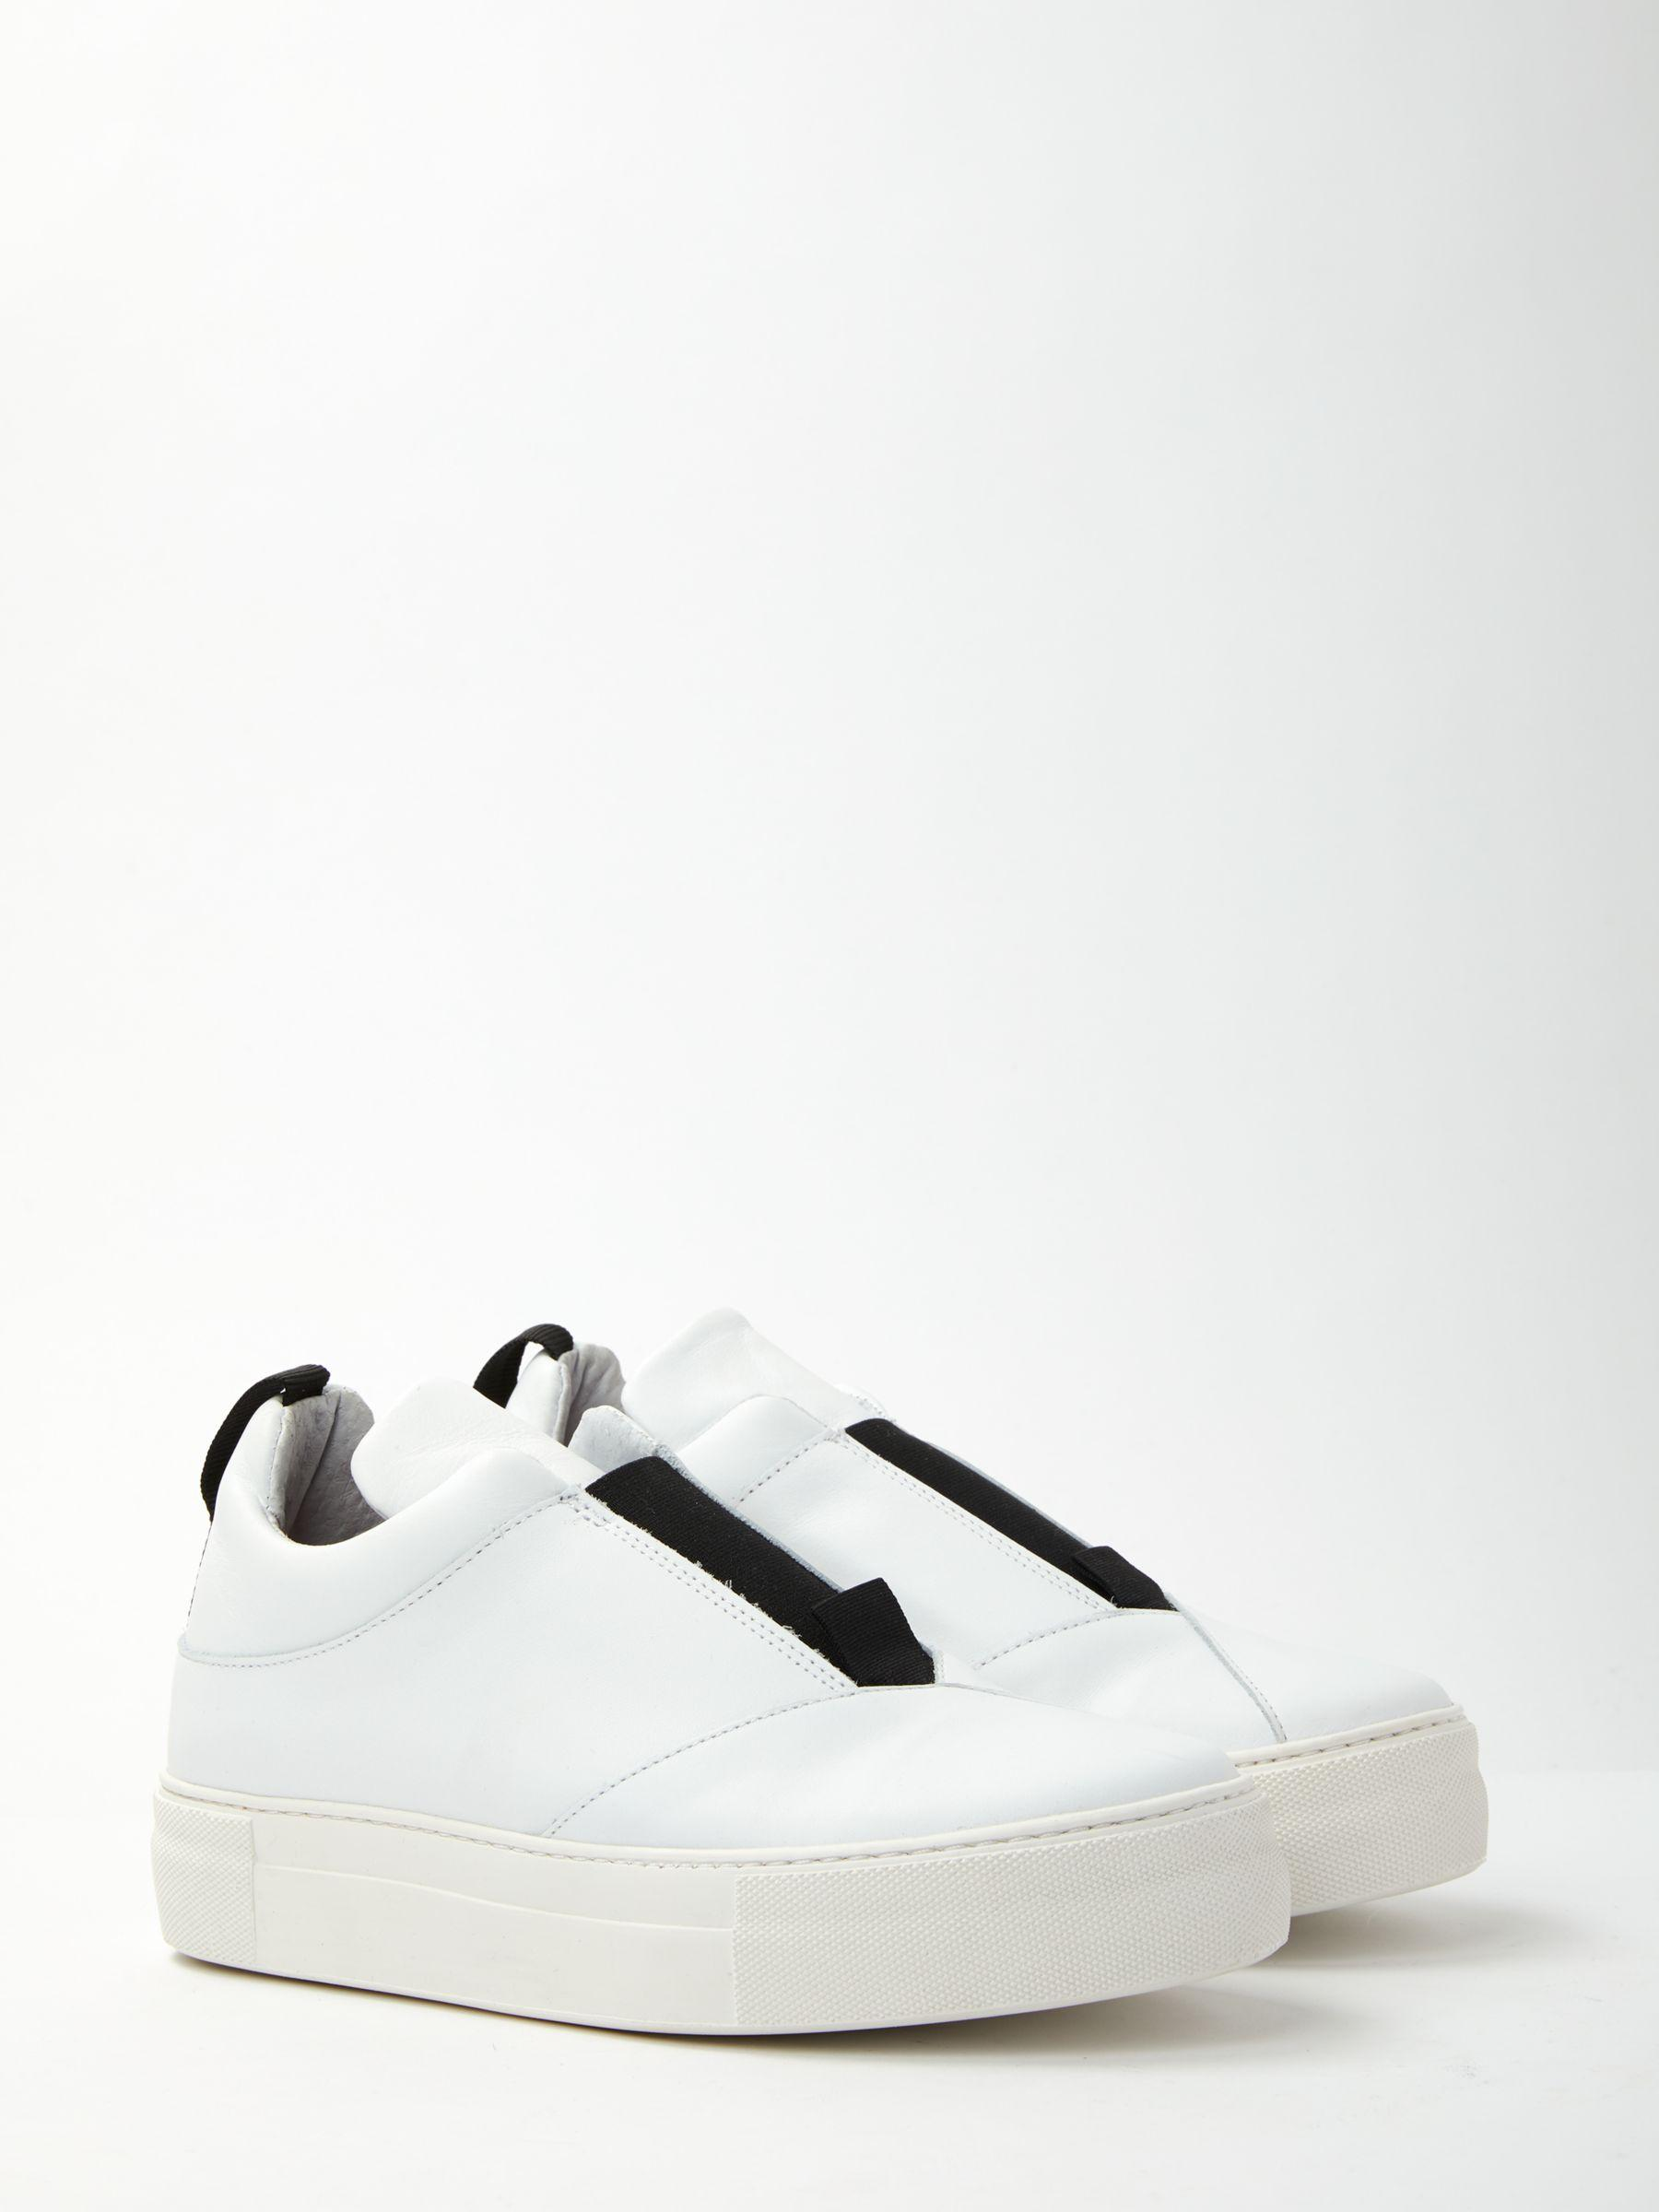 5e4fdcf0e01 SELECTED Ann Leather Slip On Trainers in White - Lyst